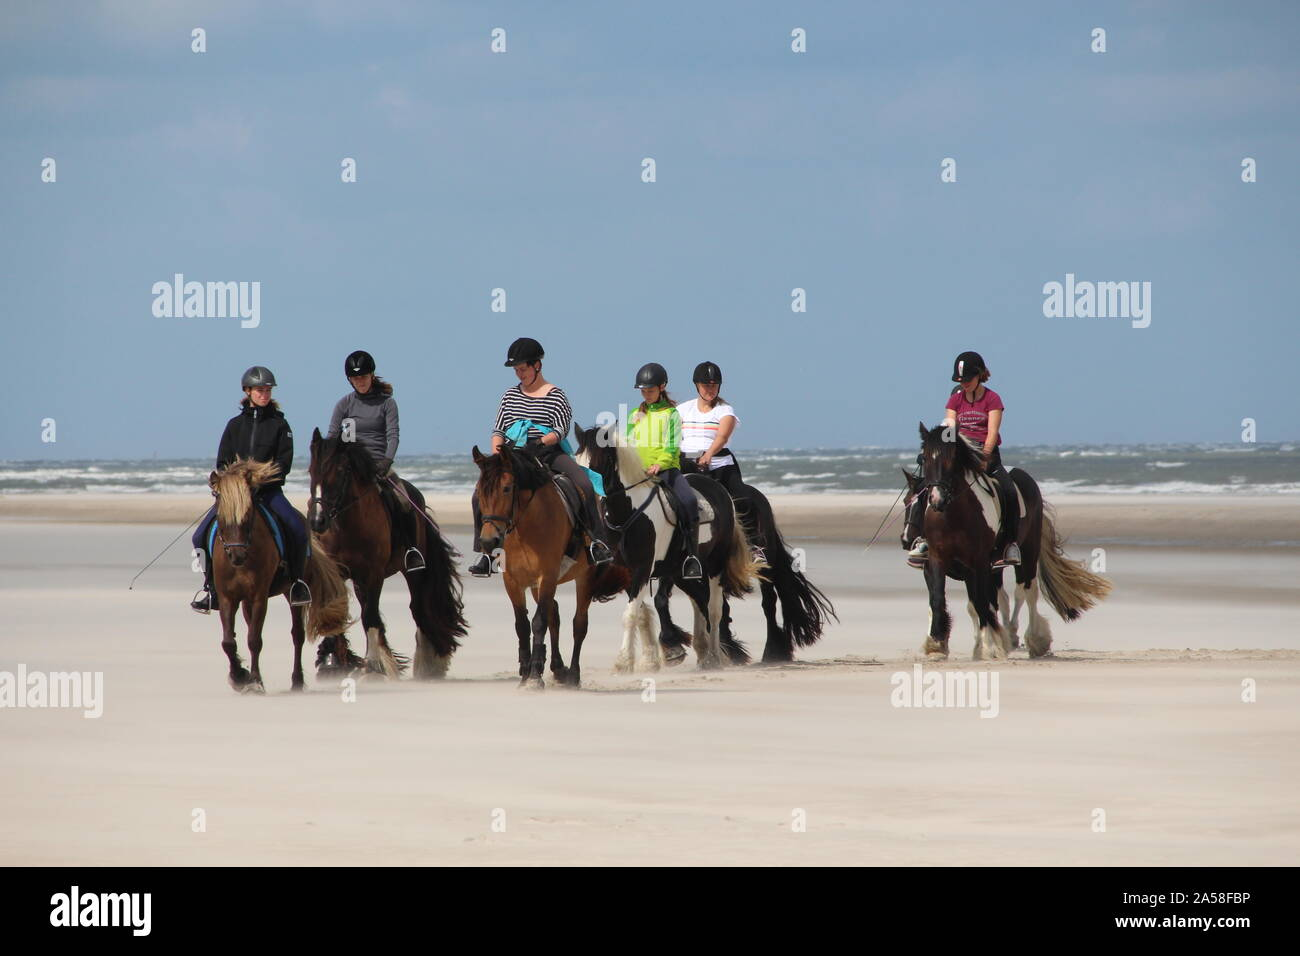 Horse back riding at the beach of Langeoog (Germany) Stock Photo